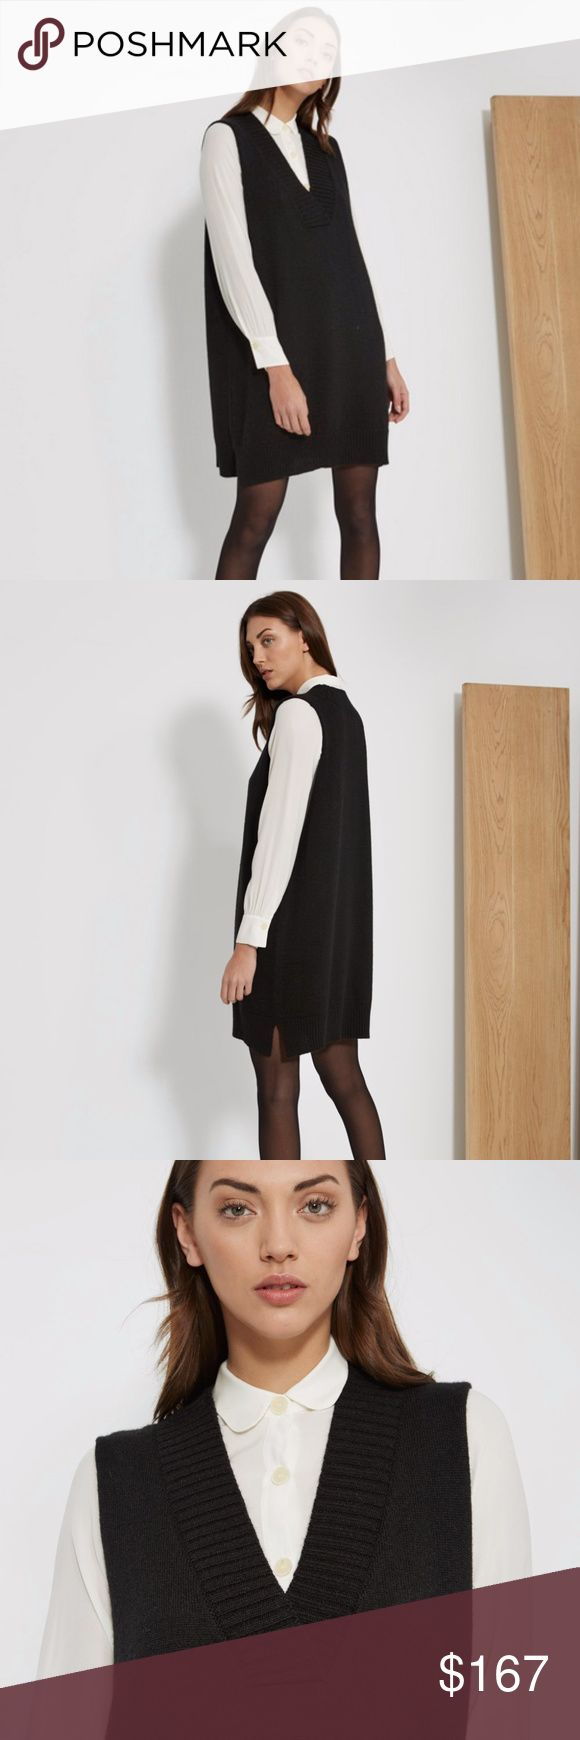 SITA MURT | black pinafore dress The perfect warm layer for your winter closet. This black pinafore dress from Sita Murt falls almost to the knees and is perfect layered over lighter long sleeves for a warm and pulled-together layered look.  Color: Black Sita Murt Dresses